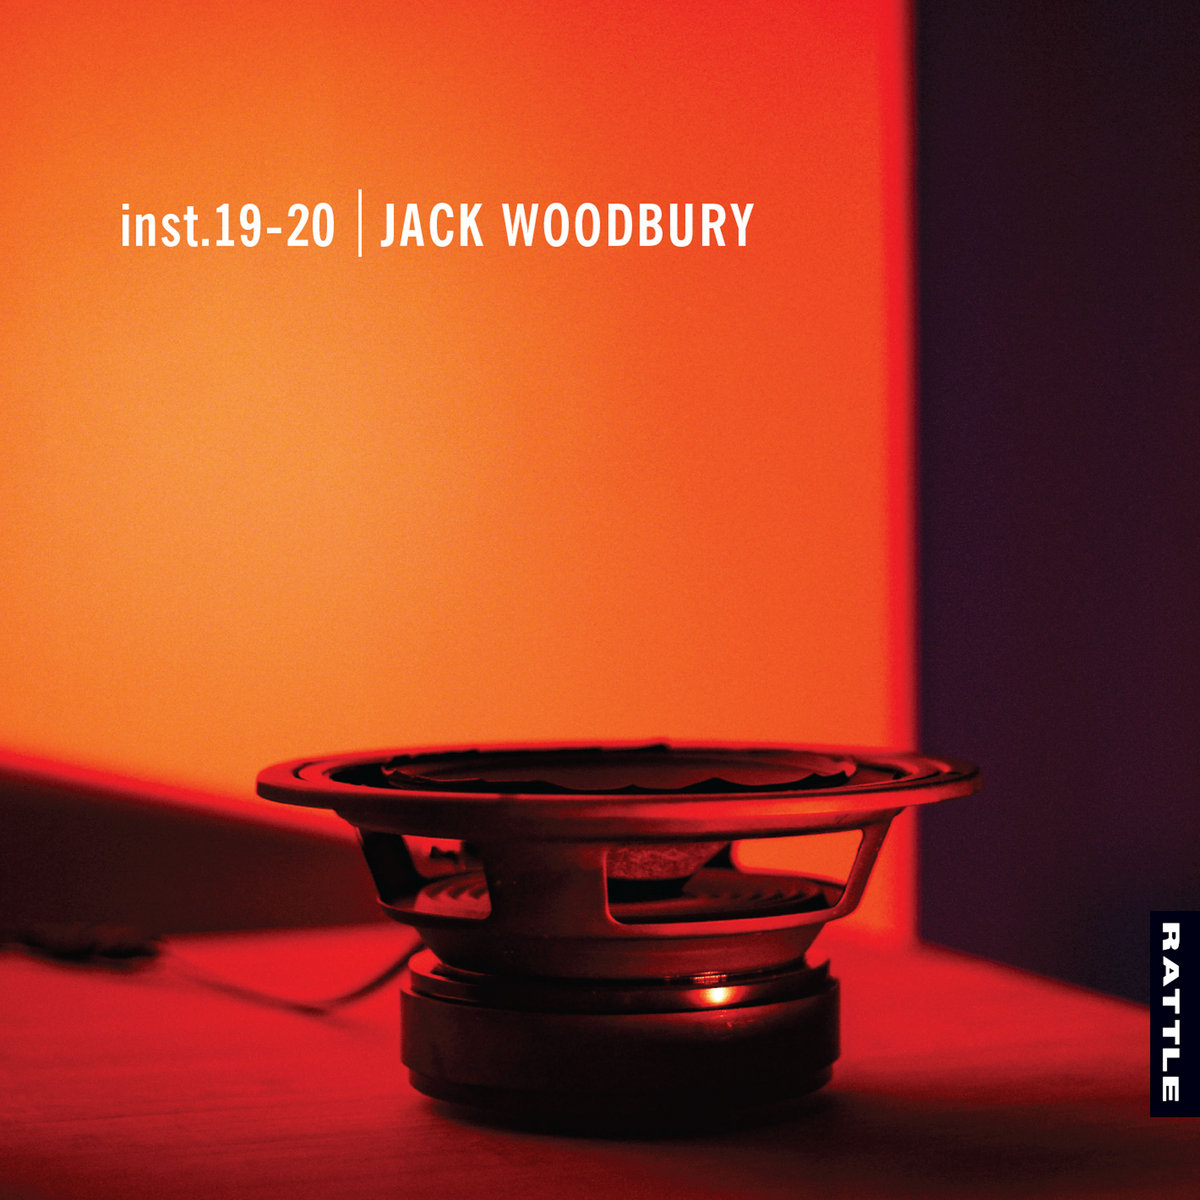 Jack Woodbury | inst.19-20 - downloadable MP3 ALBUM